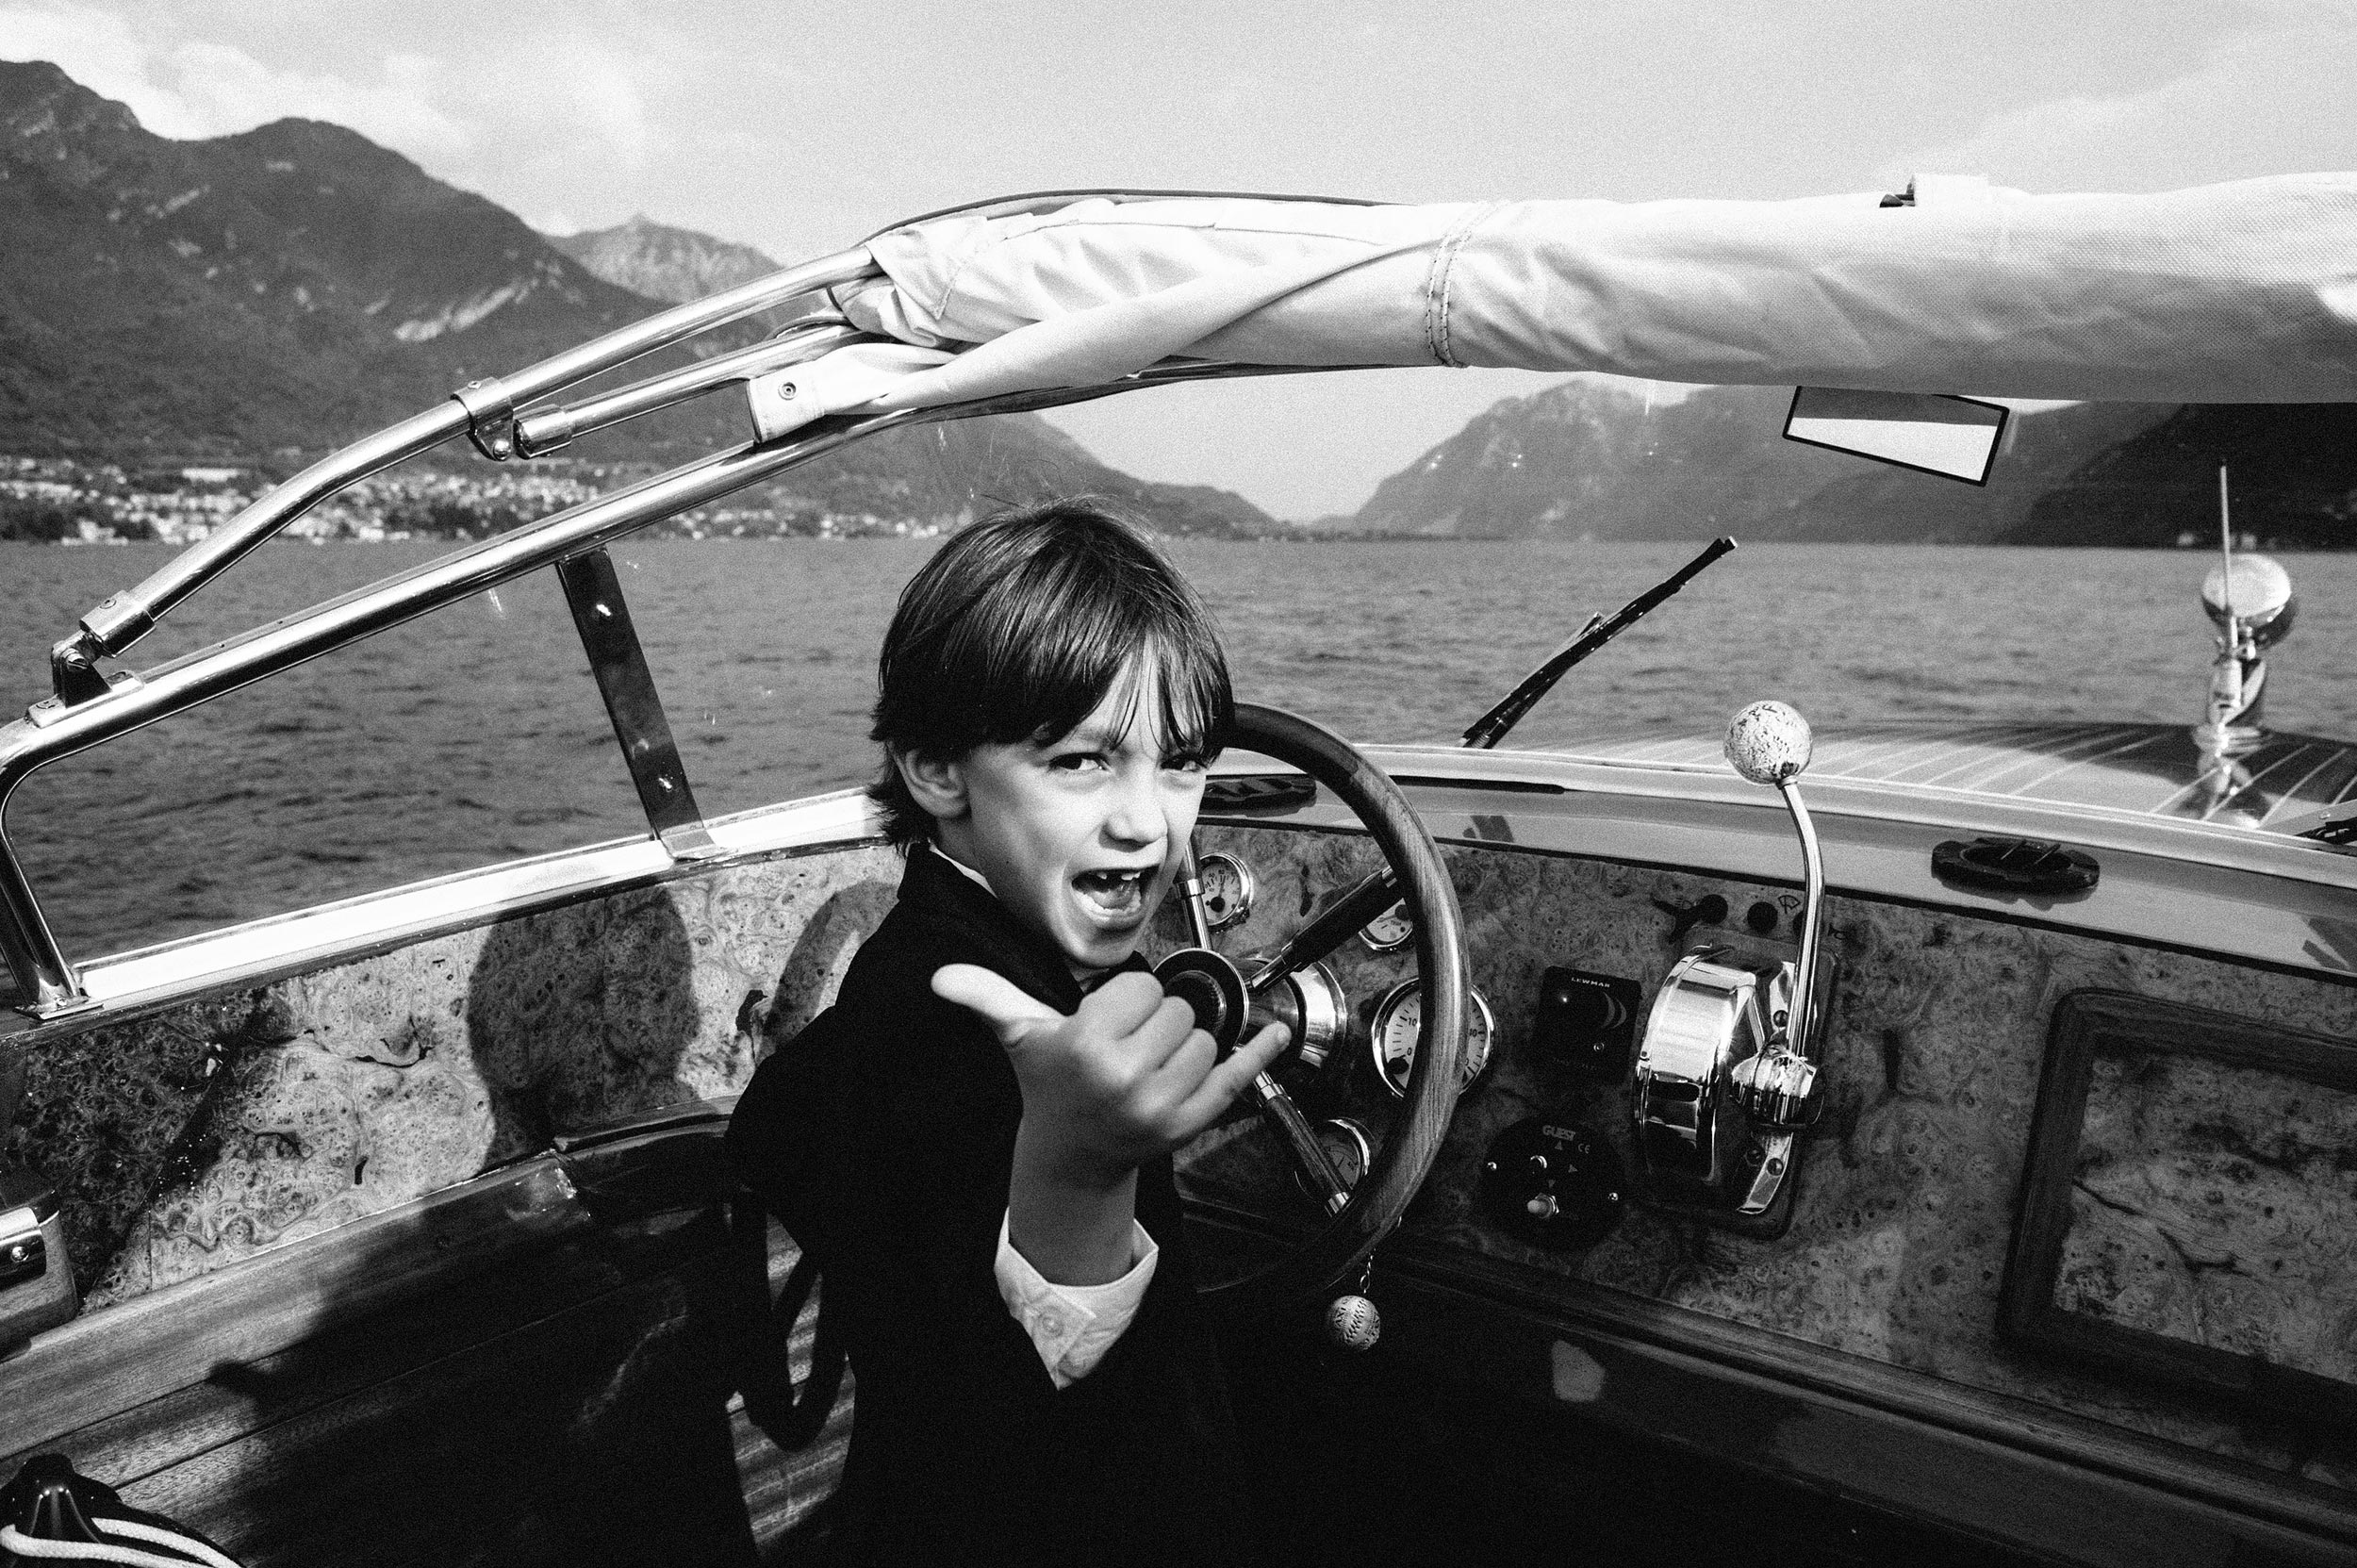 kid-driving-a-motorboat-on-lake-como-black-and-white-wedding-photography.jpg